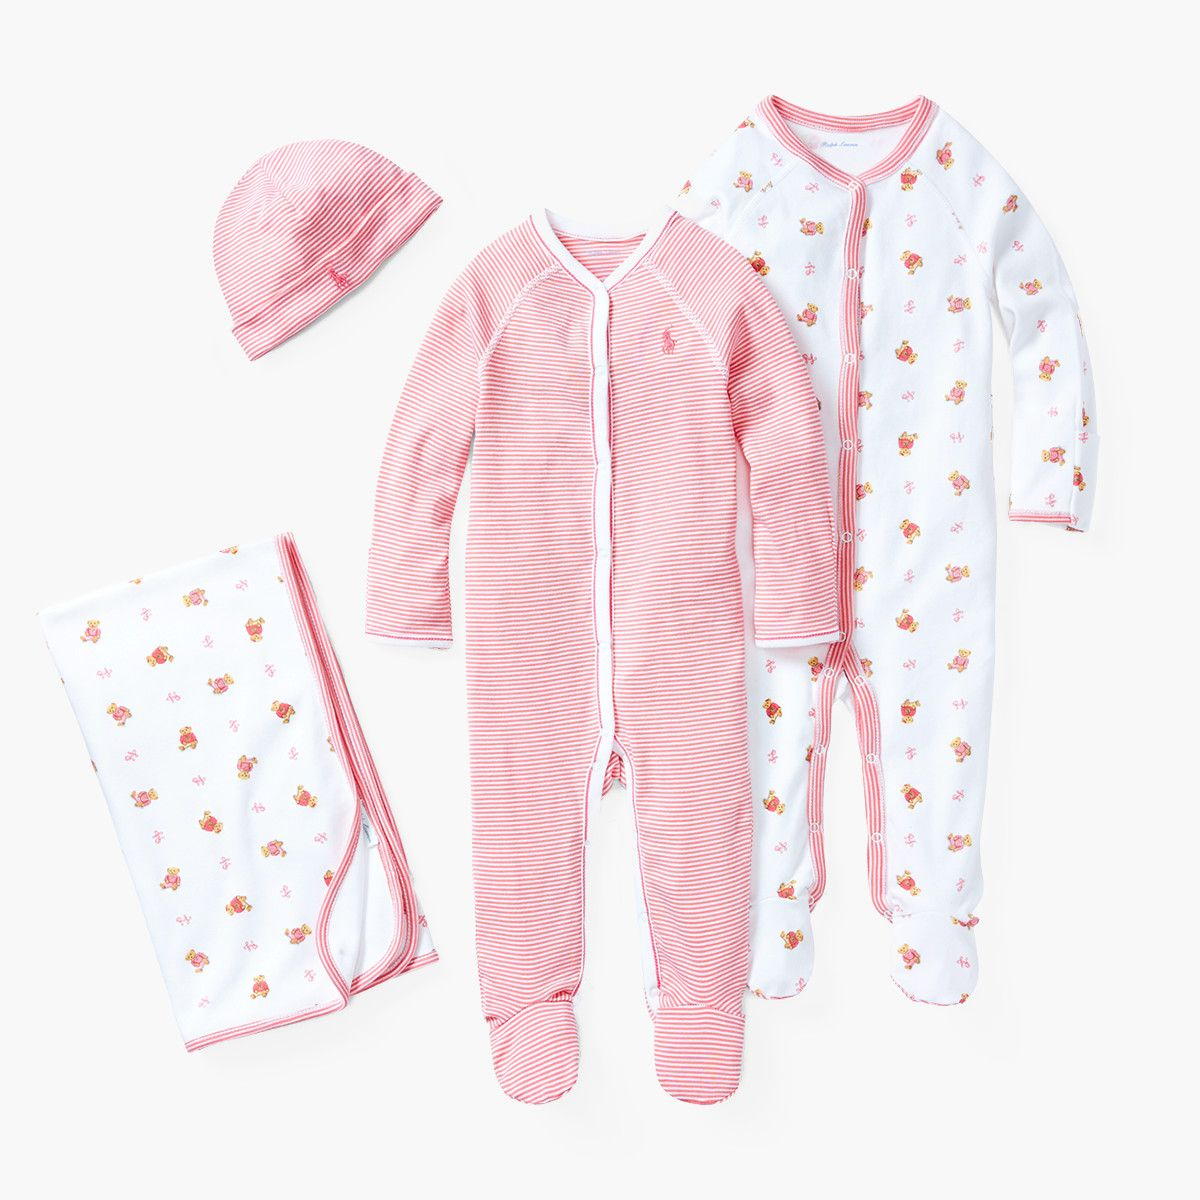 Baby Sets and Gifts